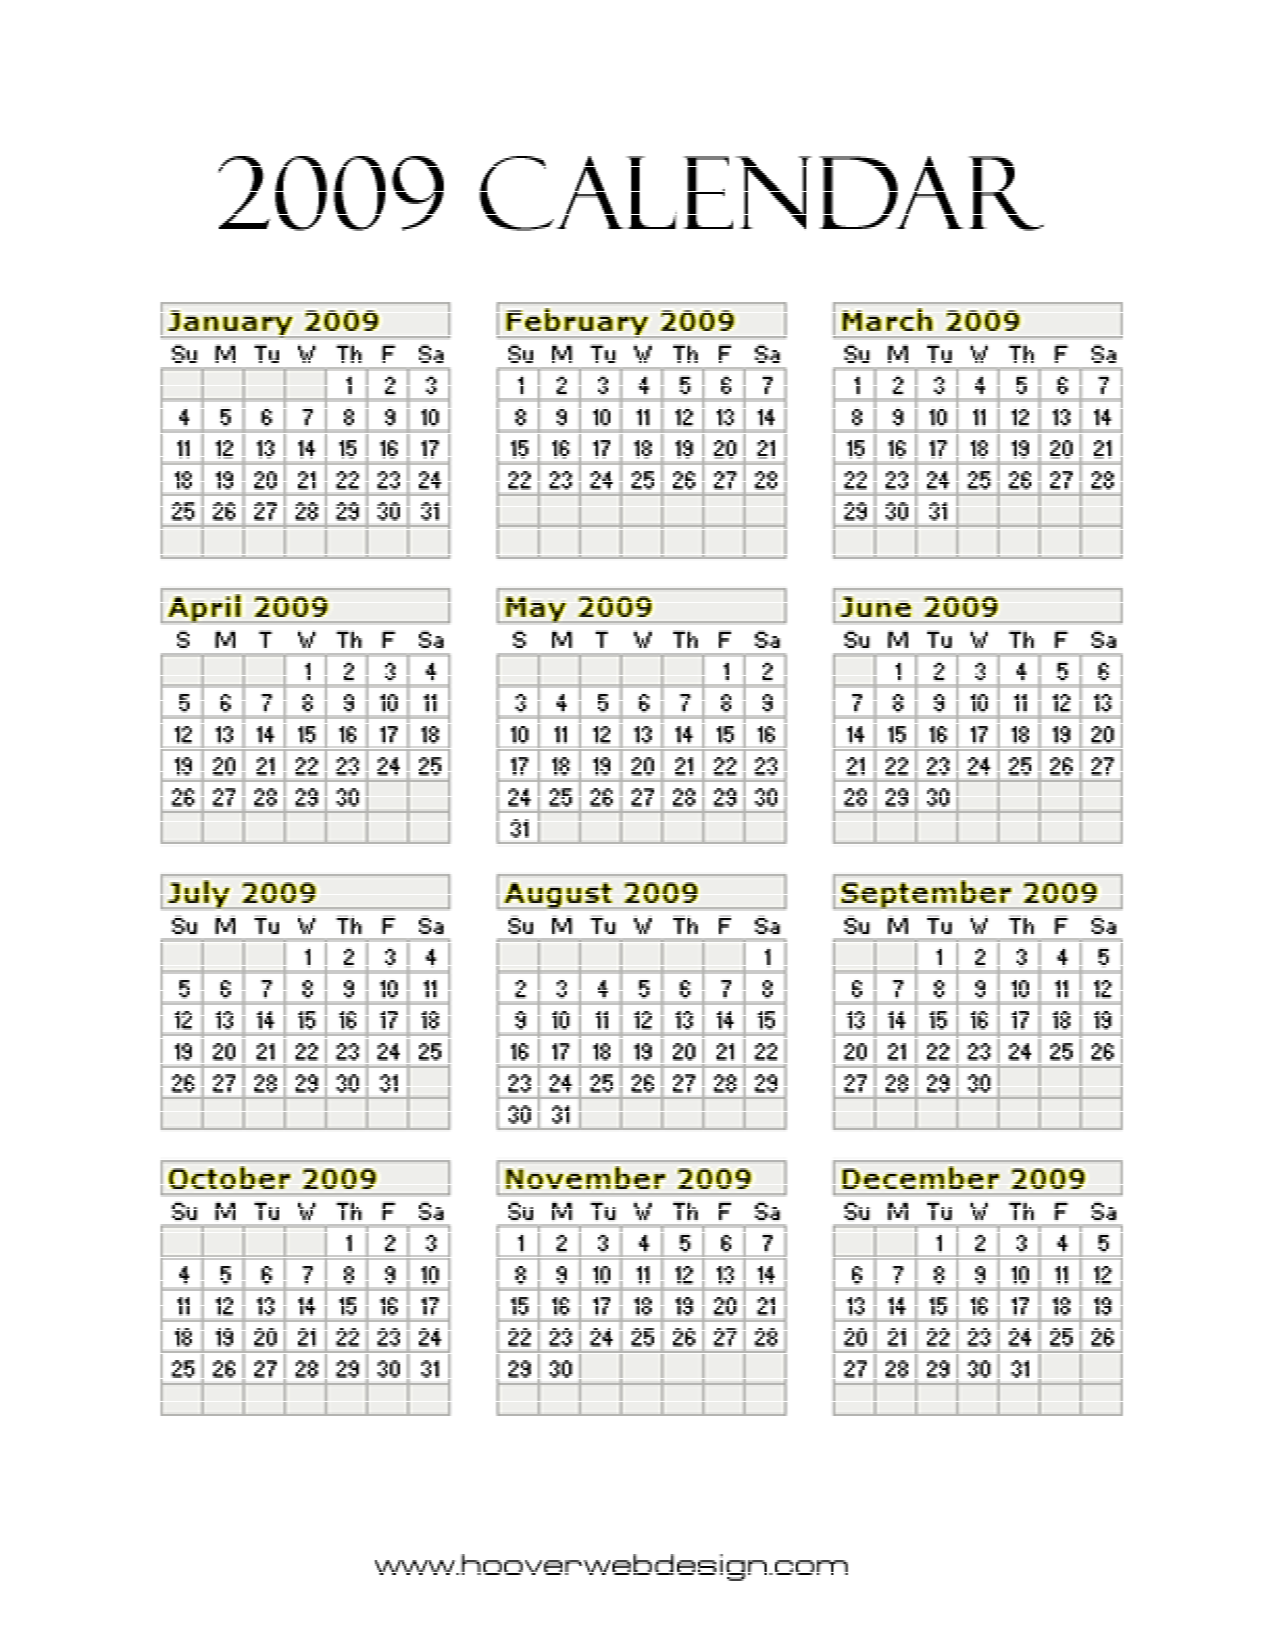 8 Images of 2009 Calendar Free Printable